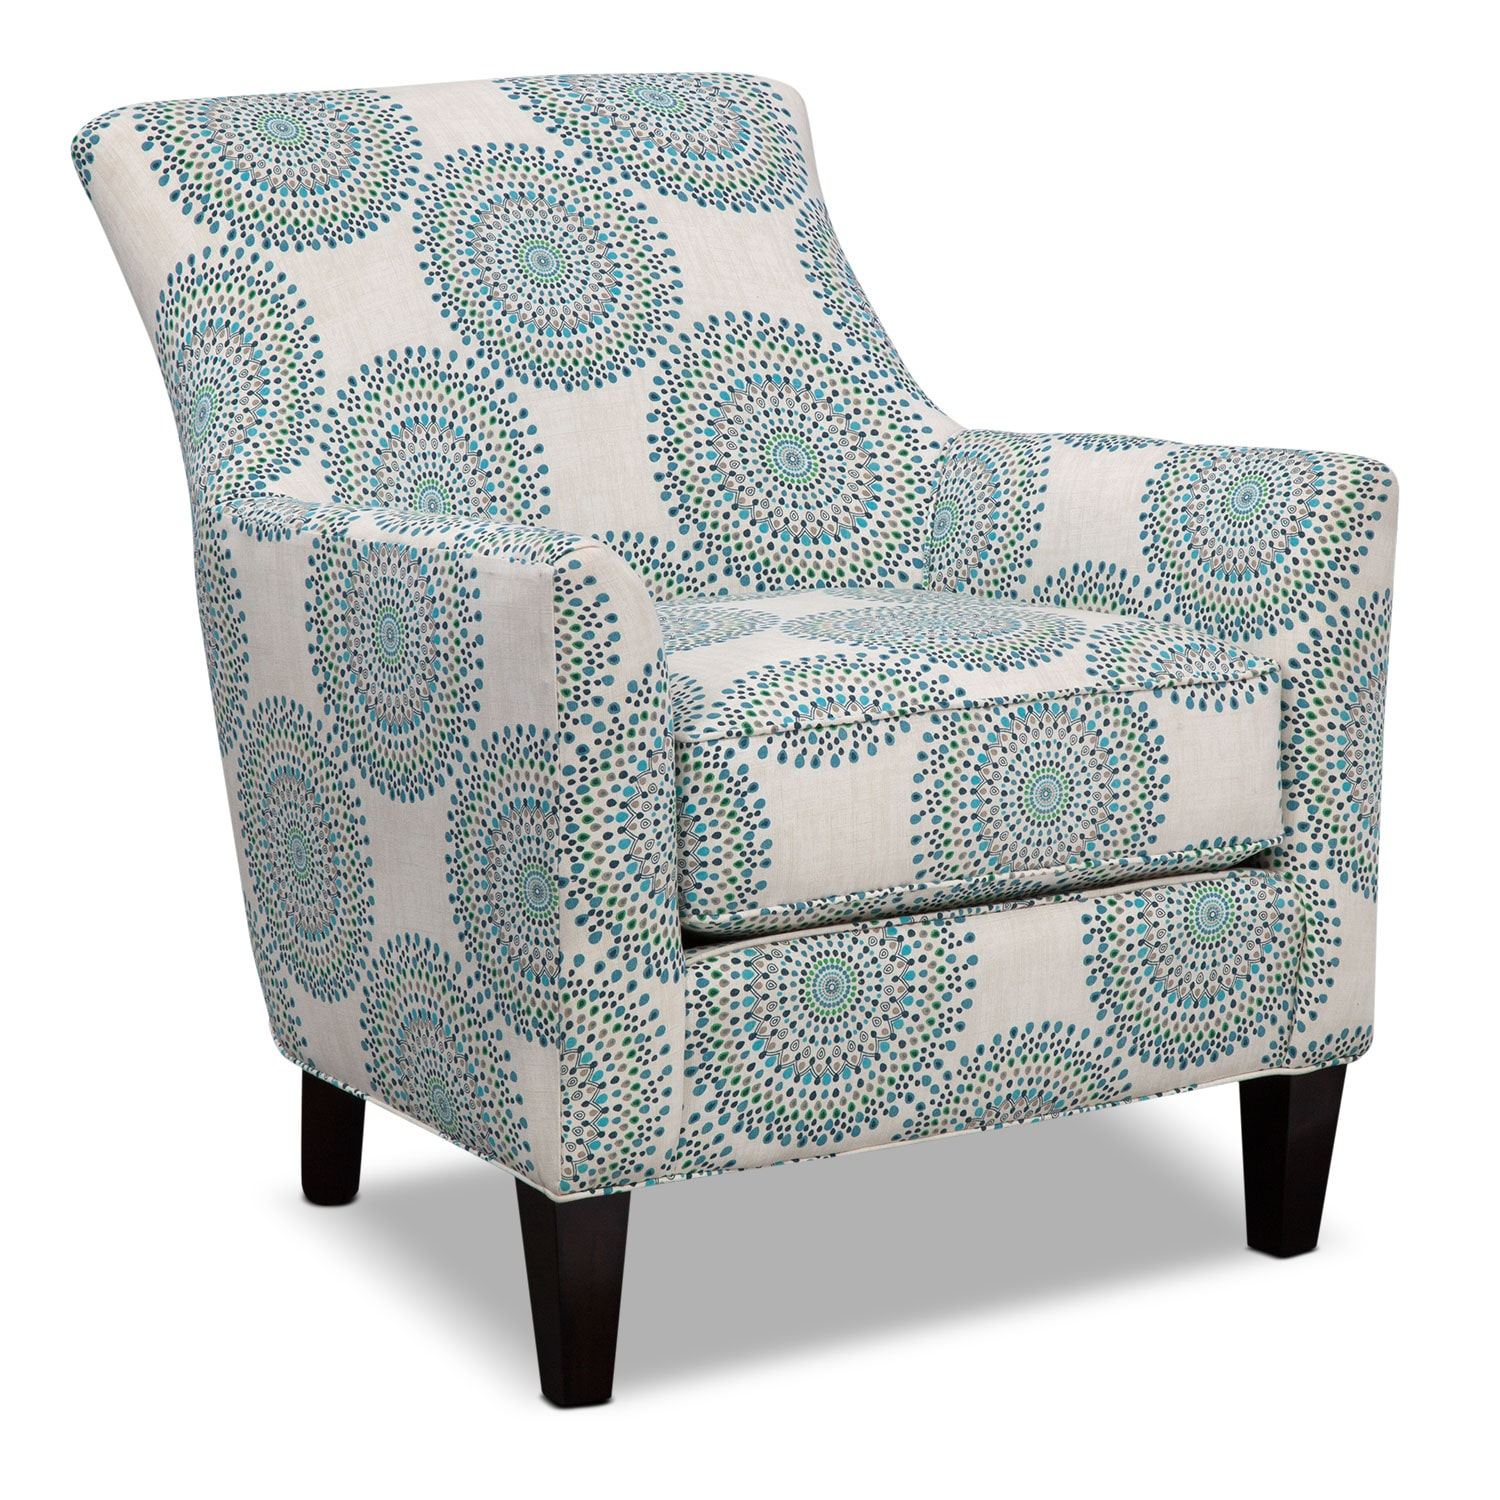 Bedroom Furniture - Rachel Carousel Accent Chair - Blue